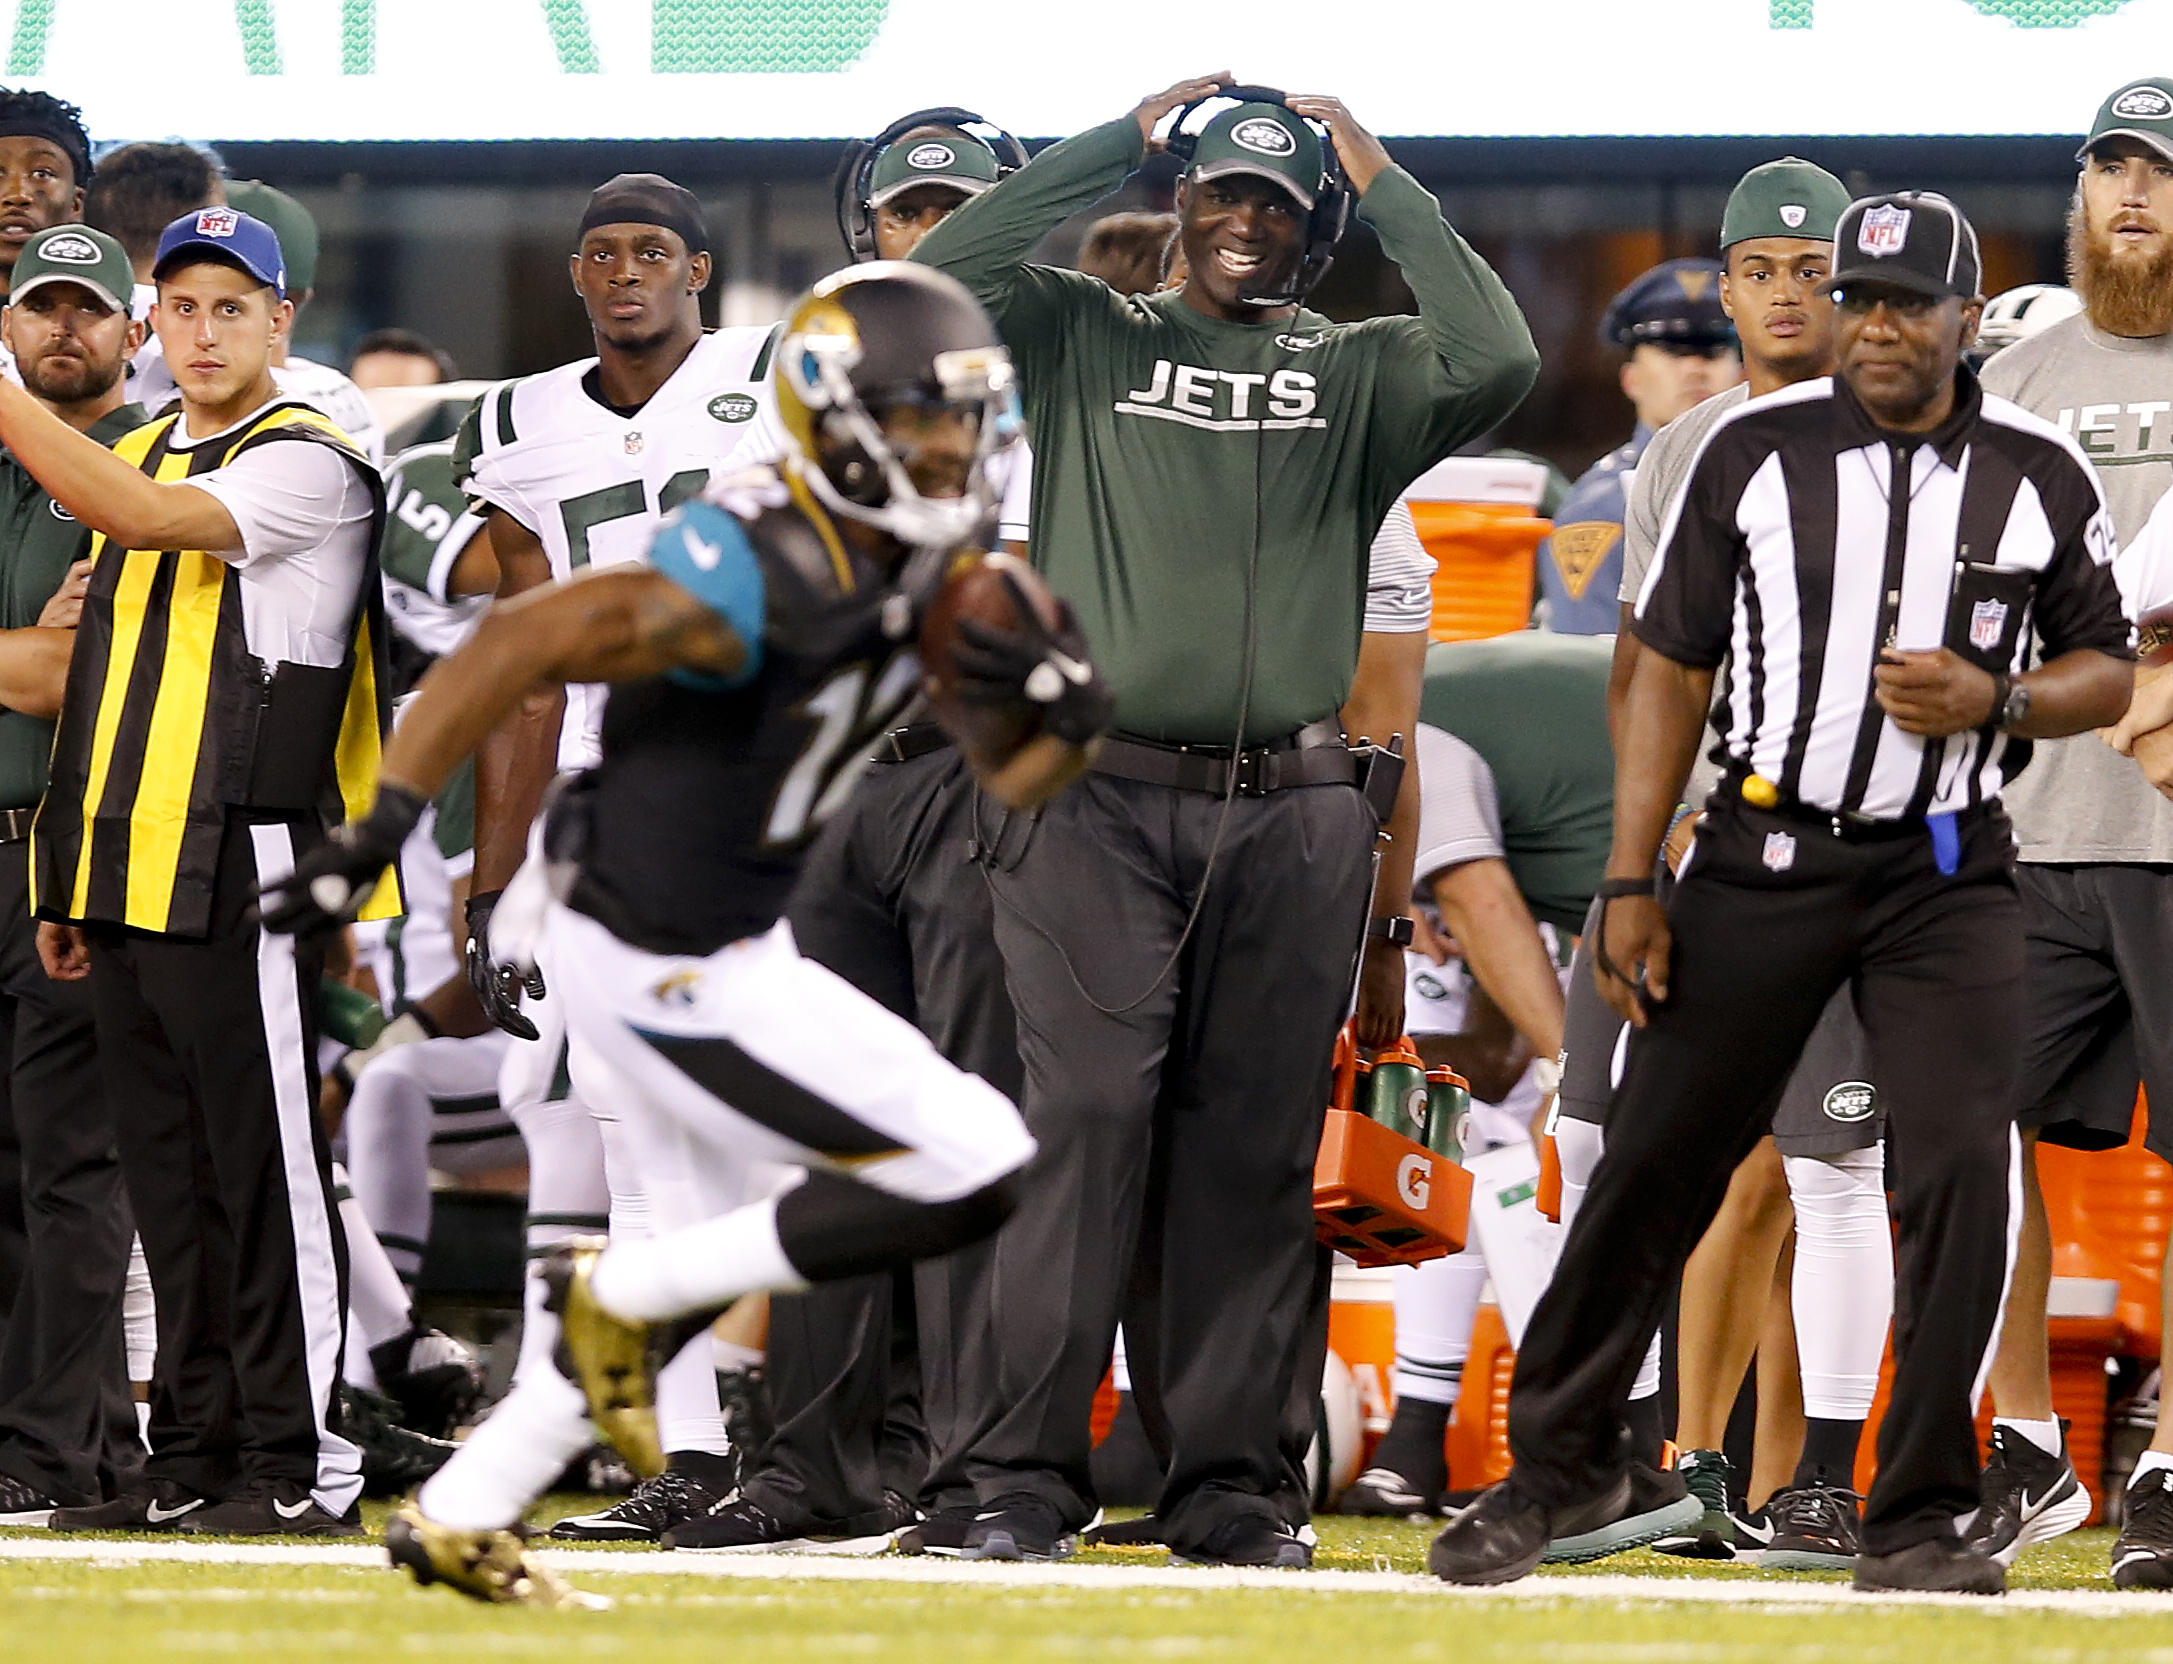 New York Jets head coach Todd Bowles reacts as Jacksonville Jaguars wide receiver Tony Washington (12) runs the ball up field during the second quarter of an NFL football game, Thursday, Aug. 11, 2016, in East Rutherford, N.J. (AP Photo/Kathy Willens)